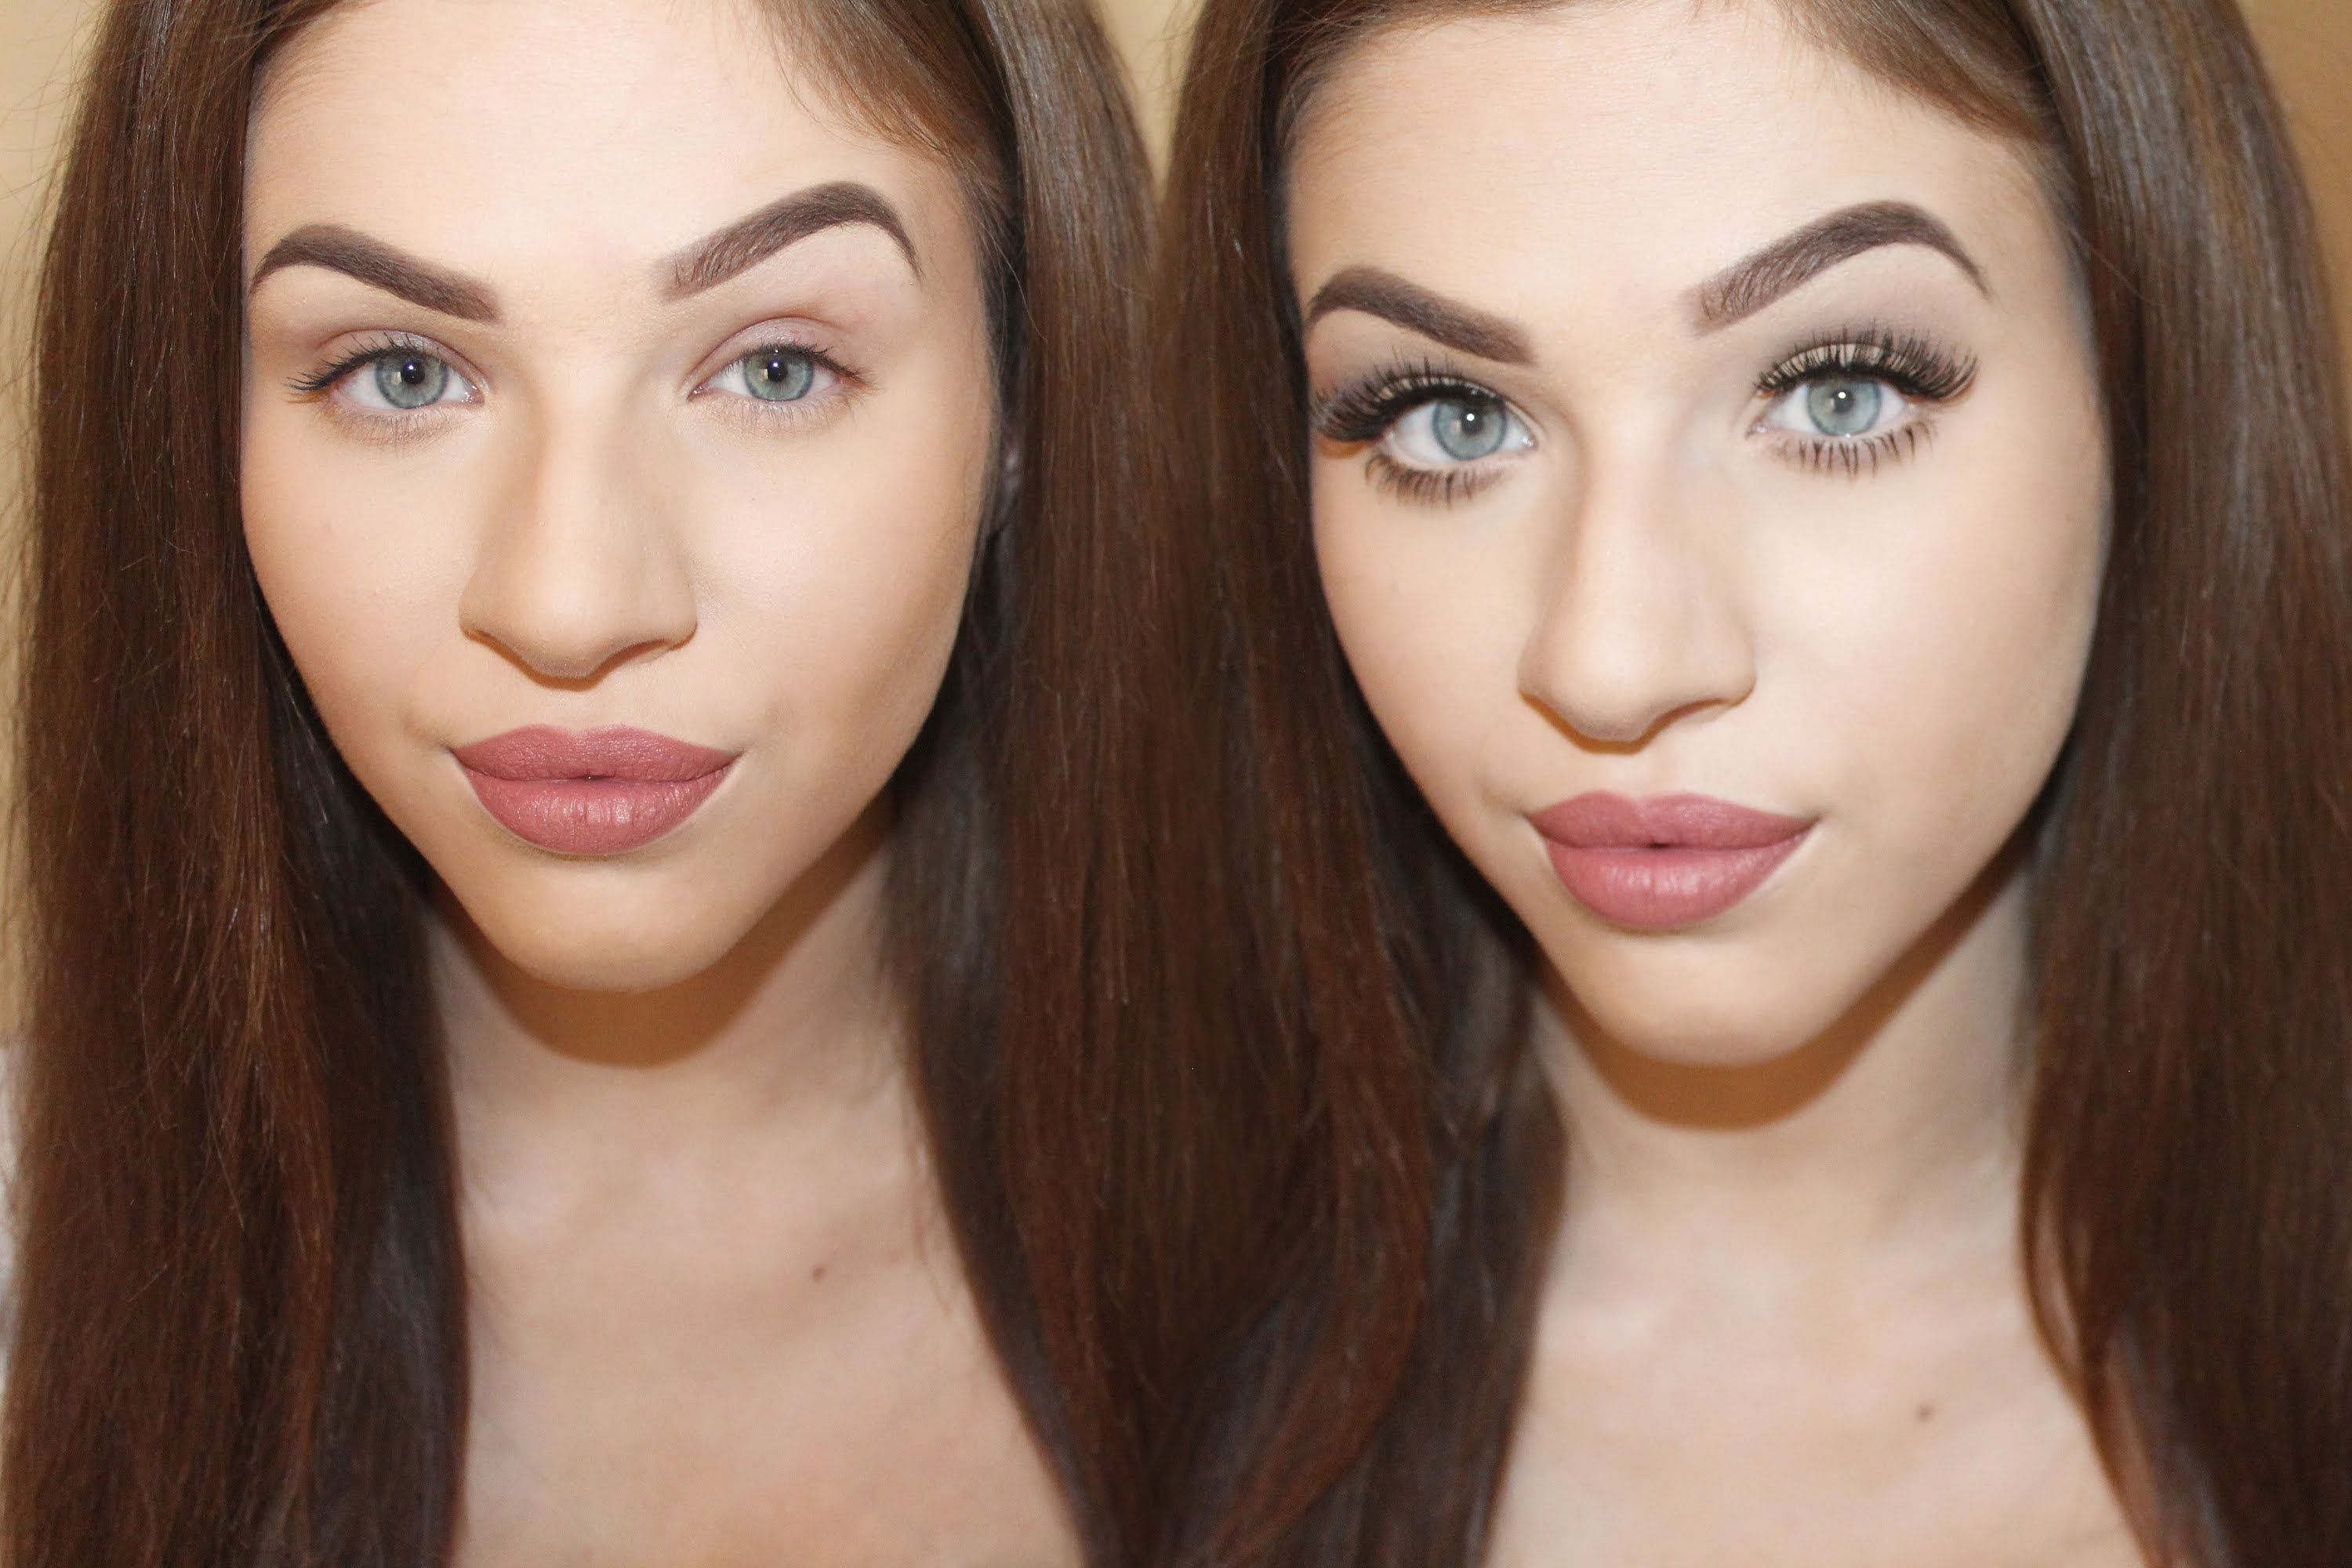 How To Make Your Eyes Look Bigger & Rounder - YouTube  Big eyes